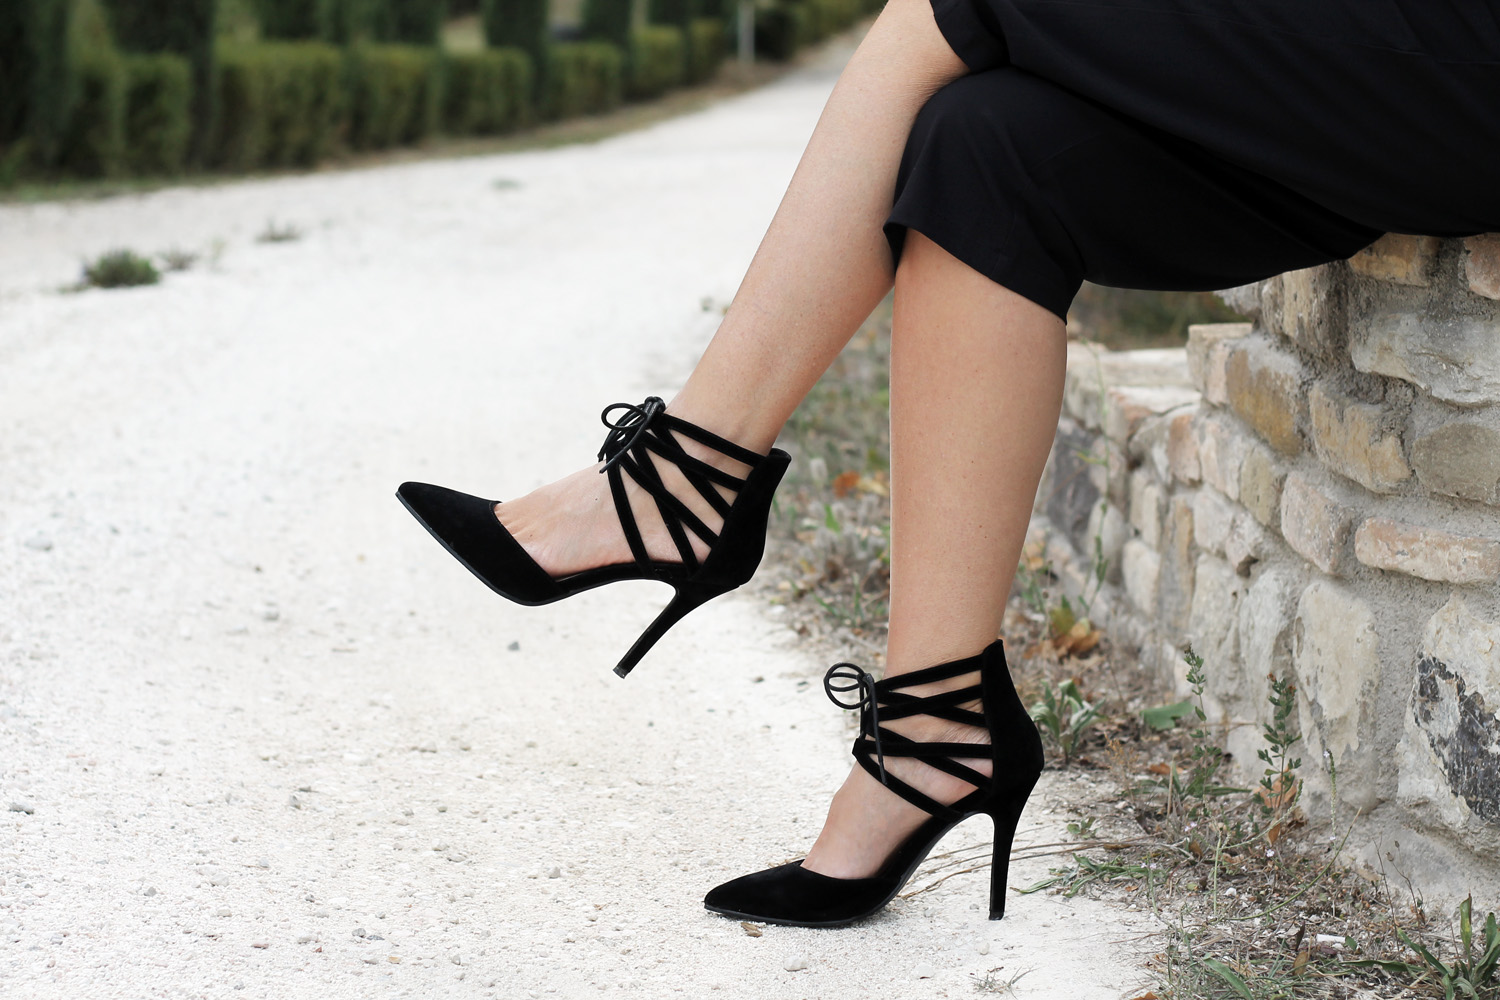 lace-up-black-heels-fashion-blogger-spylovebuy